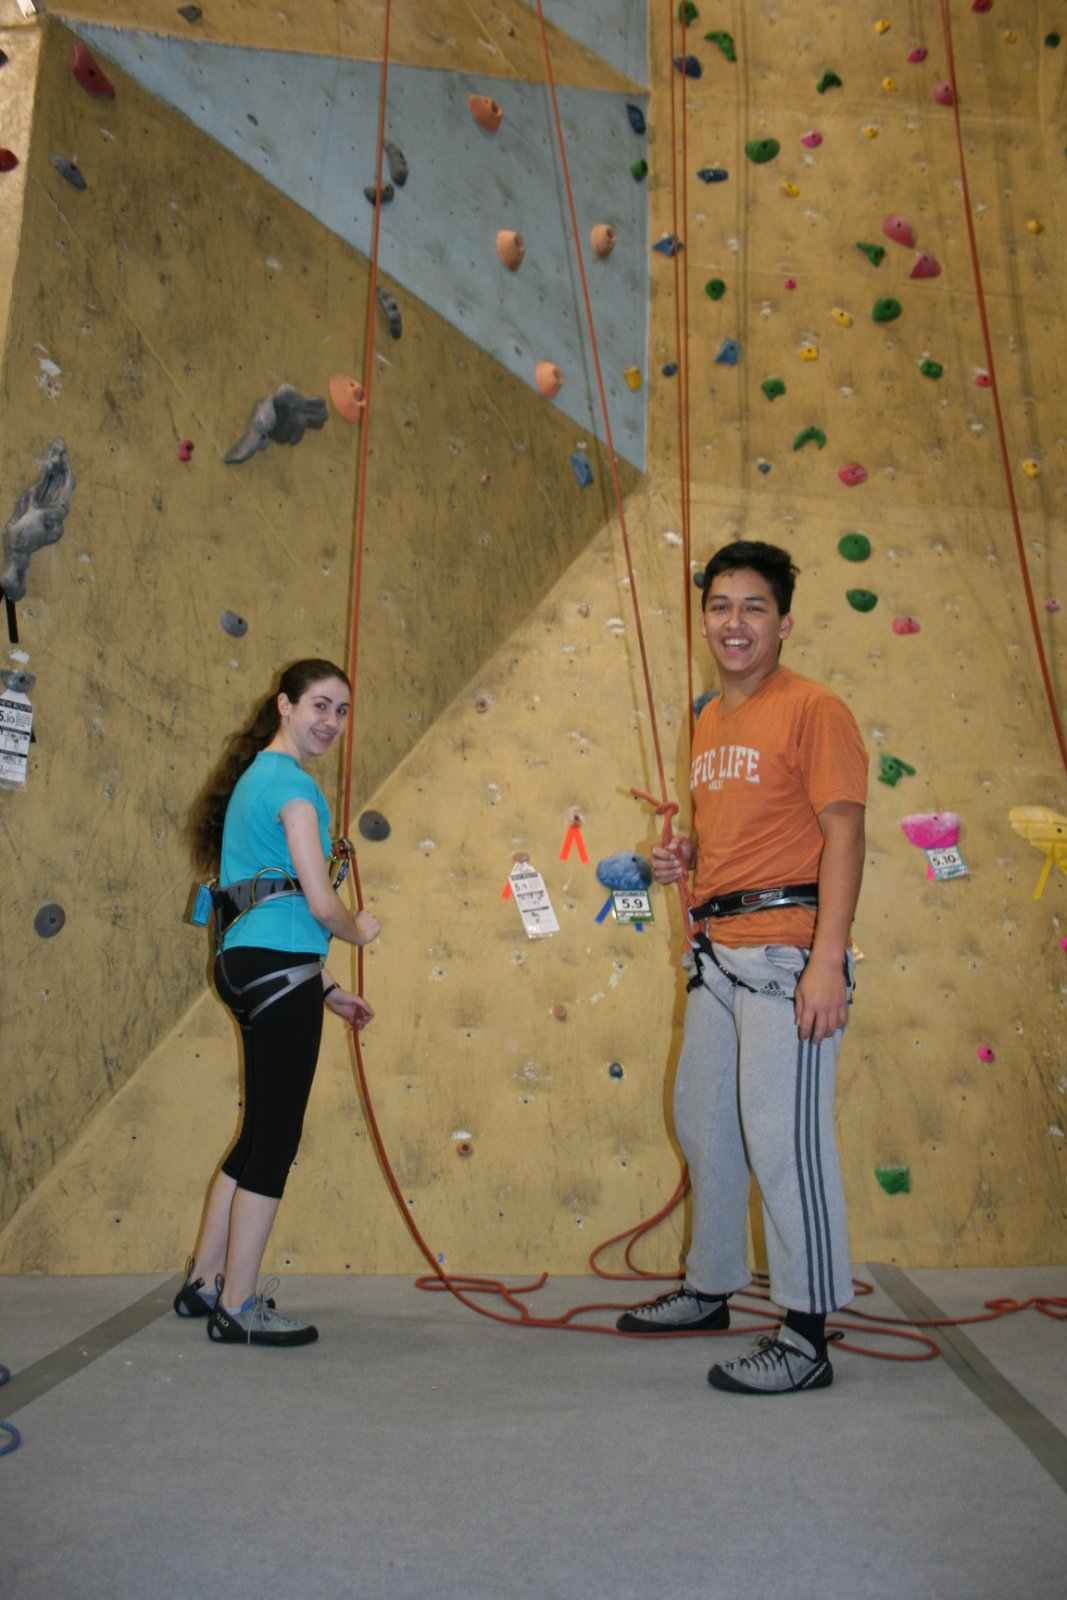 Belaying is a vital safety practice in this sport. Friendships in the club and class are strengthened through trust, accountability, and teamwork.